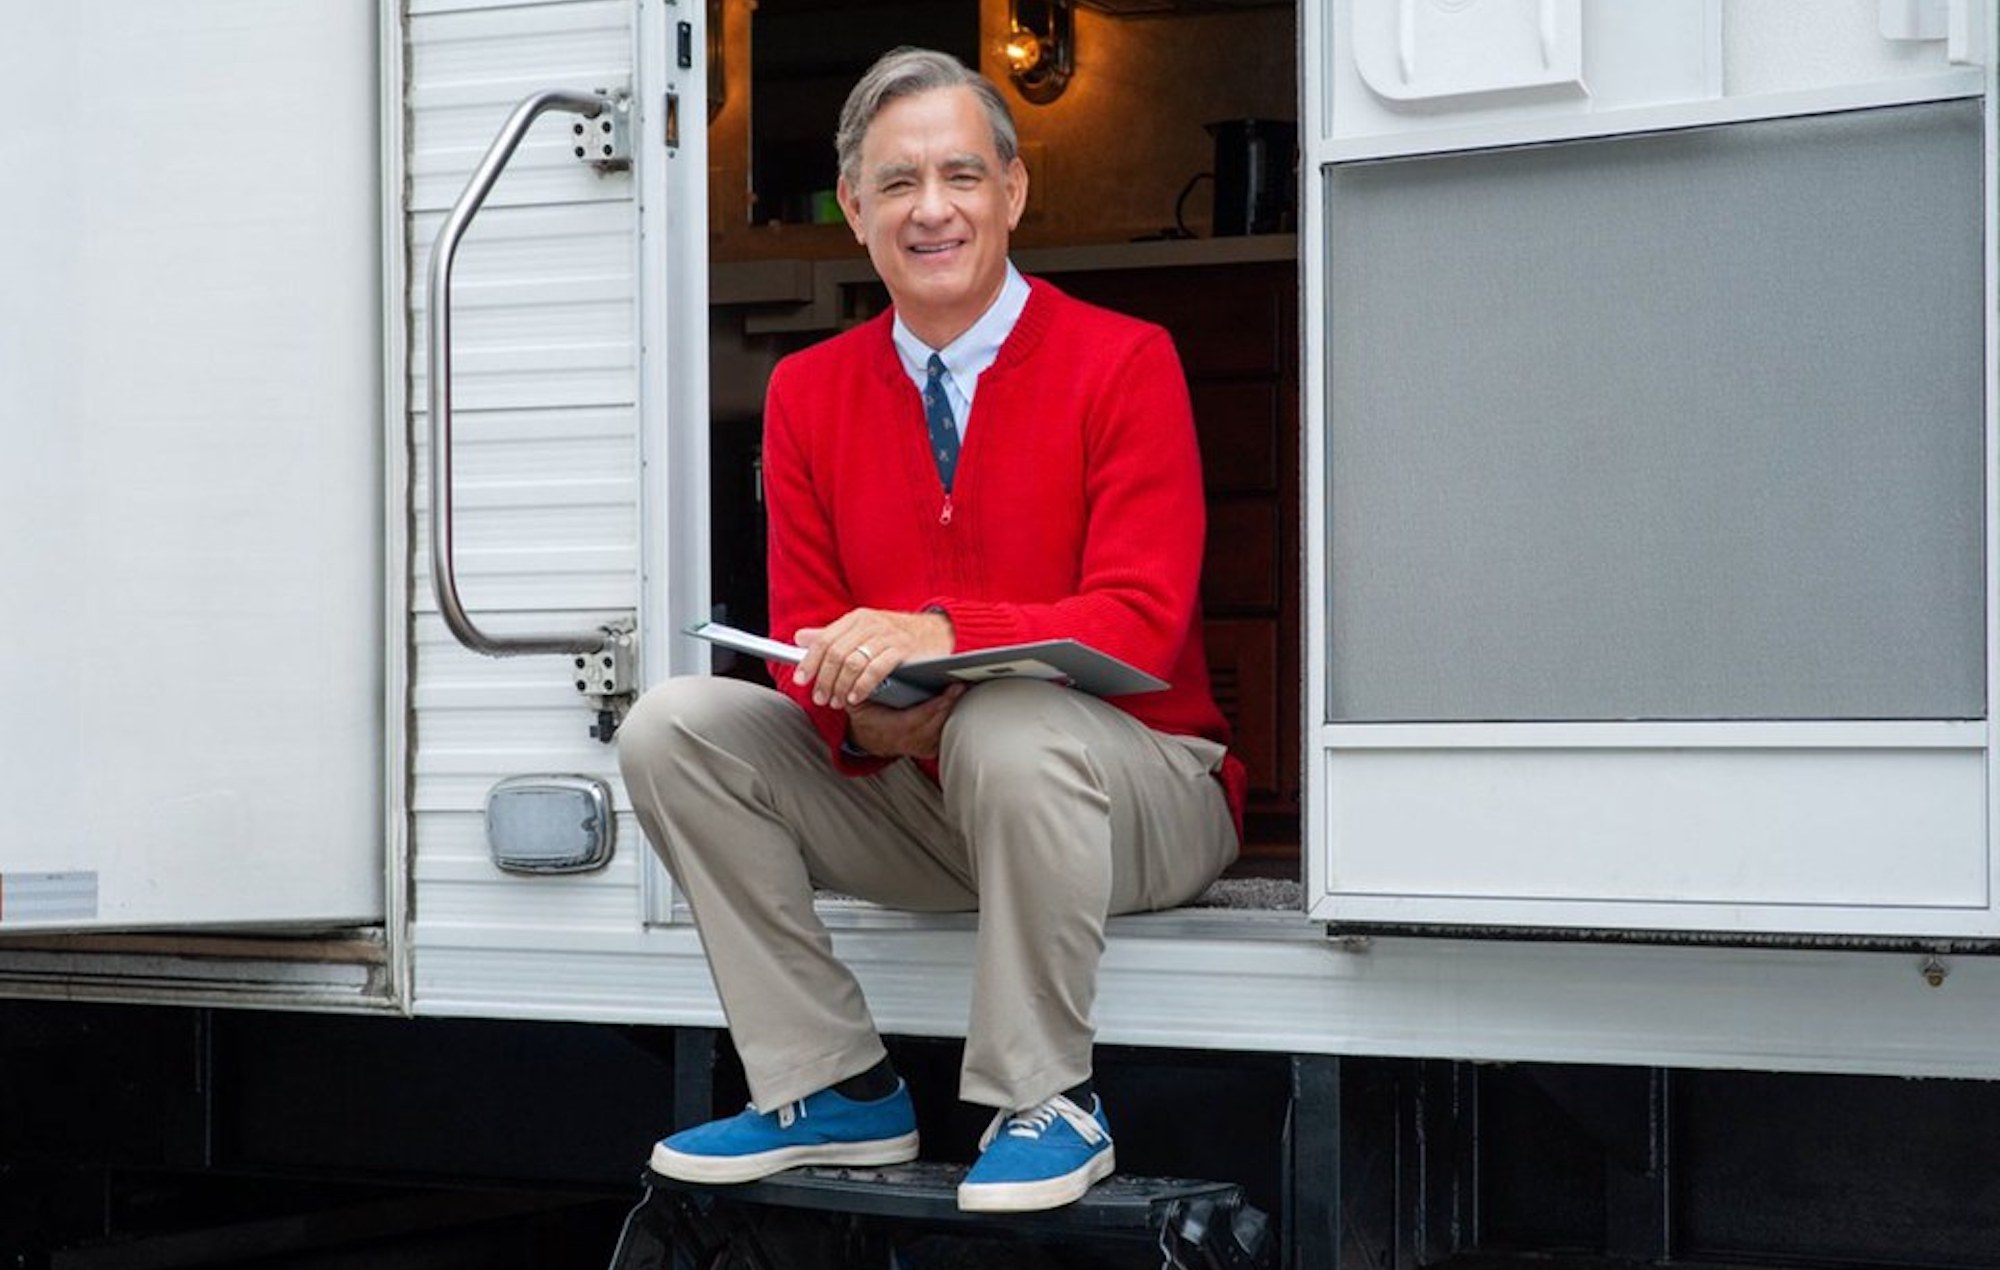 5d3f649f0617 Tom Hanks' Mr Rogers movie 'A Beautiful Day in the Neighborhood': release  date, trailer, plot, cast and everything we know - NME